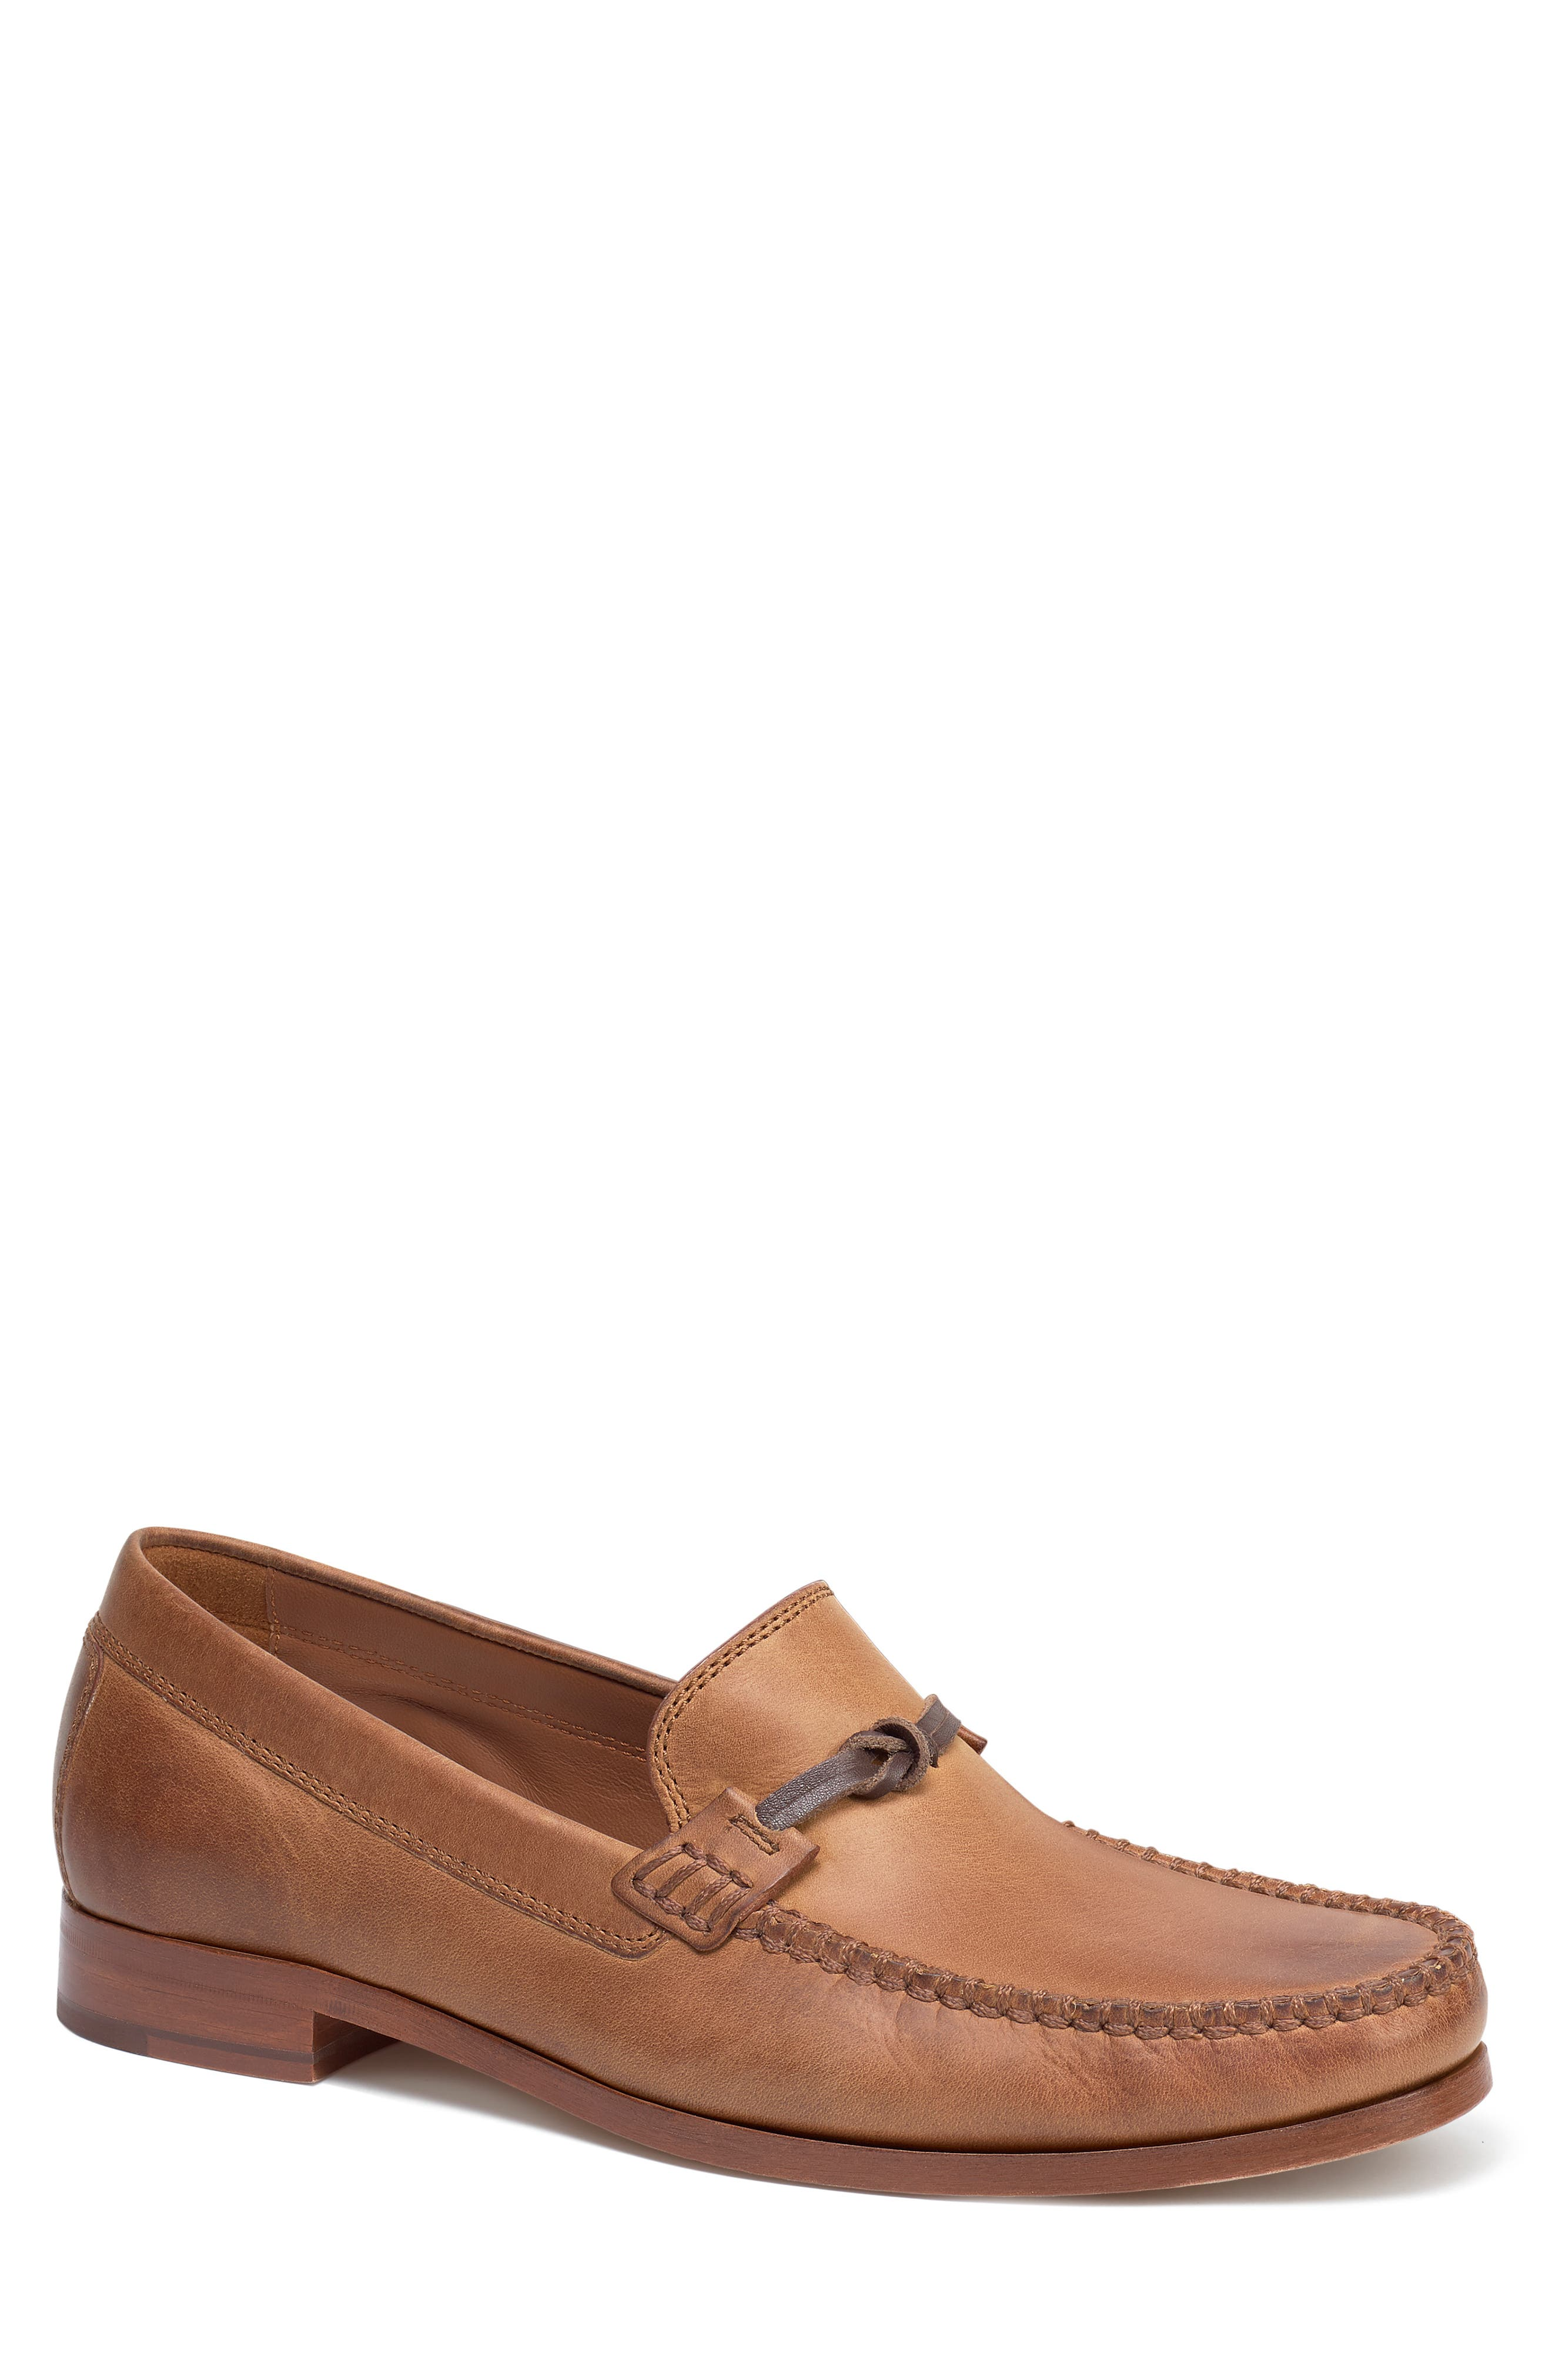 'Sawyer' Loafer,                             Main thumbnail 1, color,                             TAN LEATHER